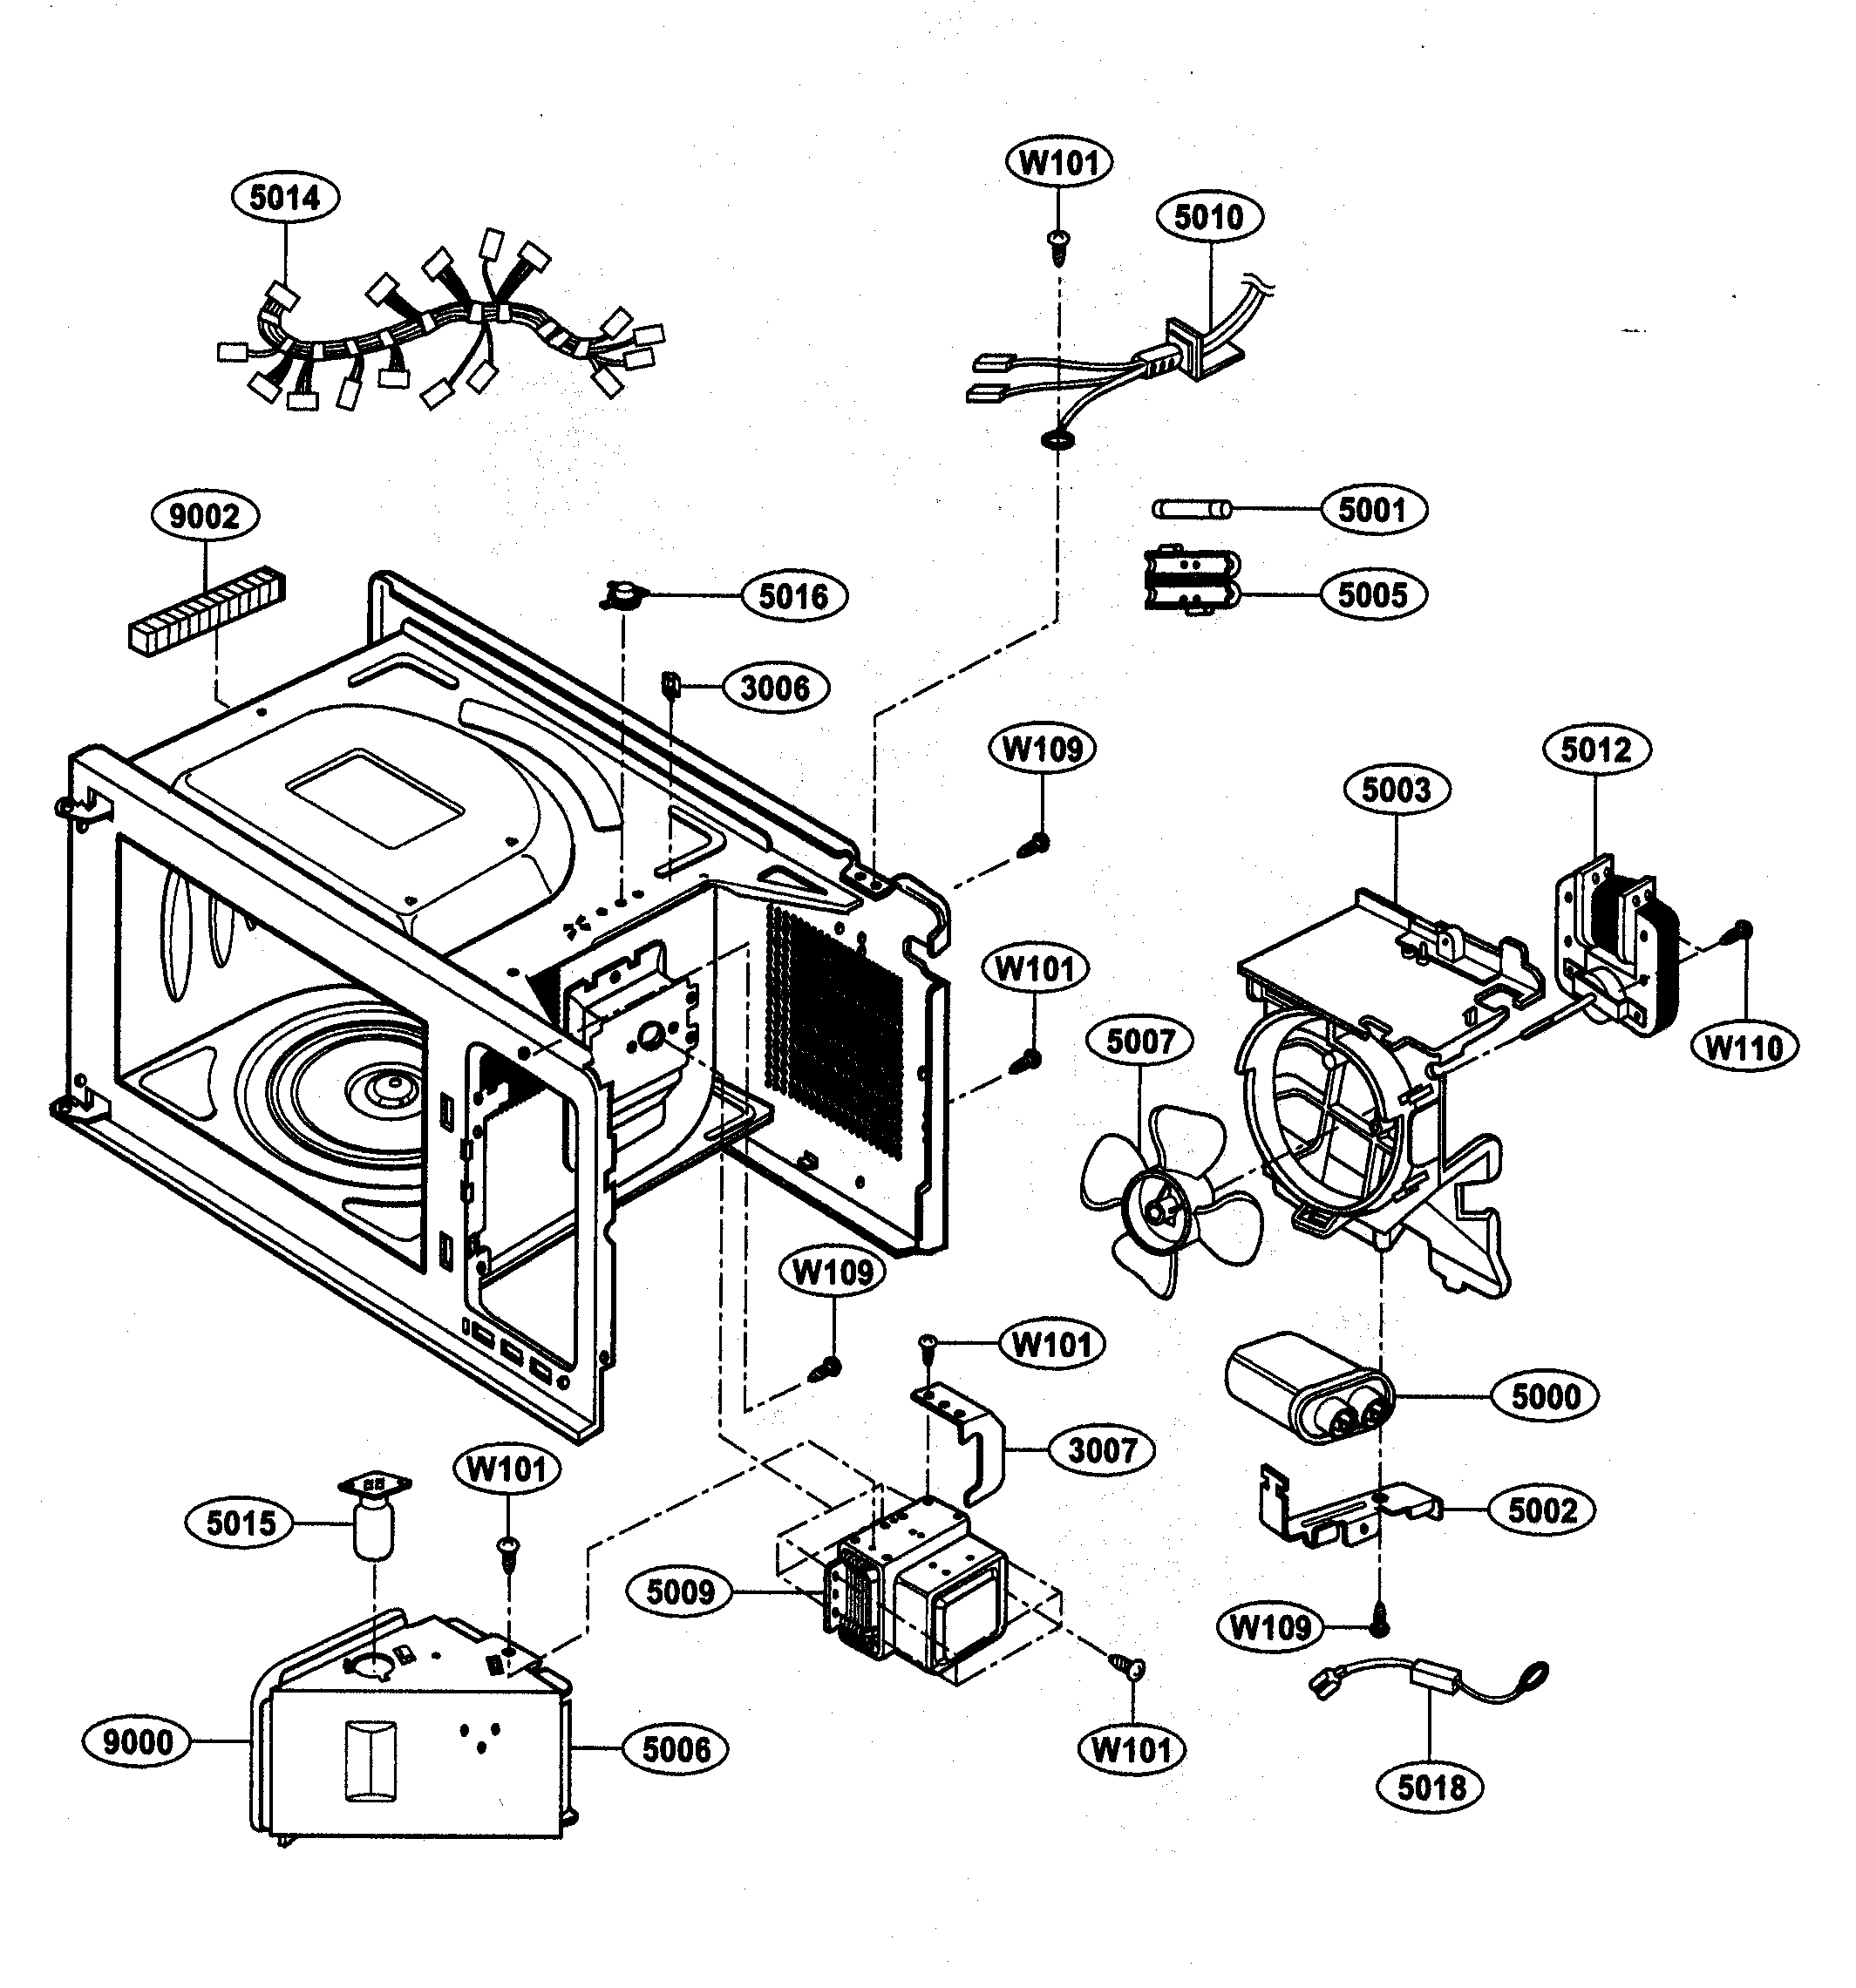 Schematic Kenmore Microwave Whirlpool Washer Schematic